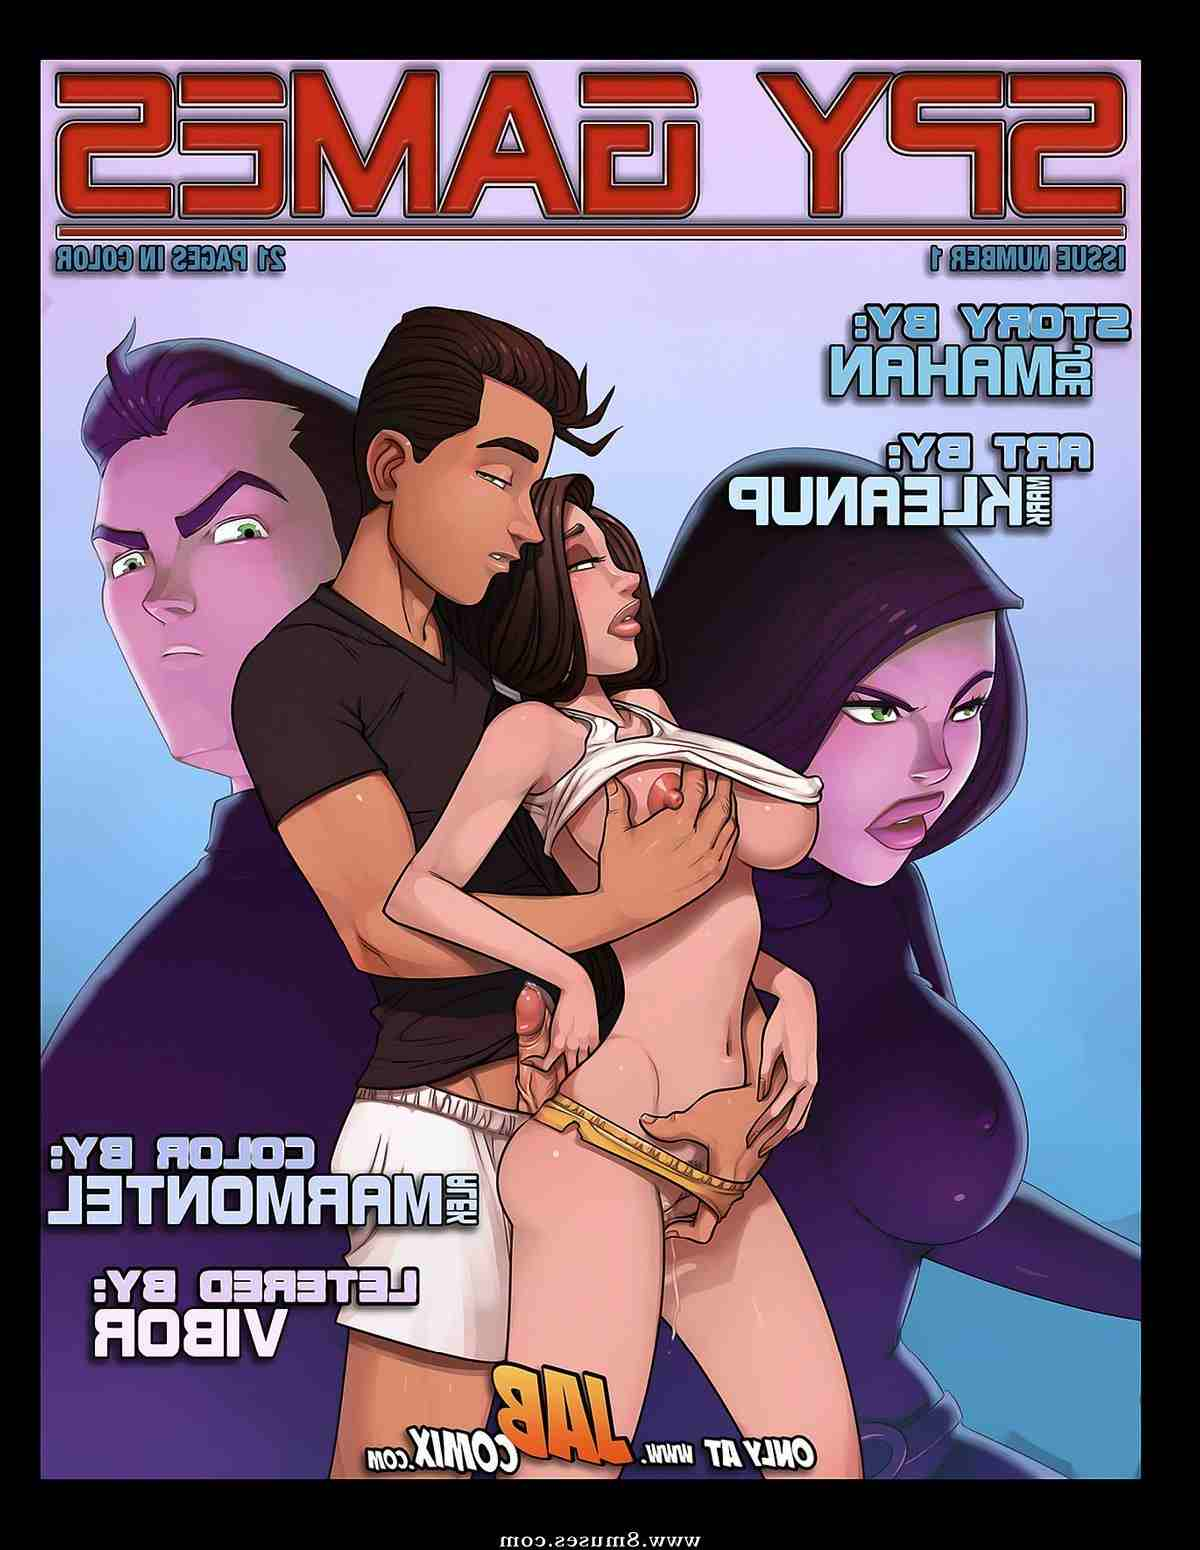 Xxx comic and game